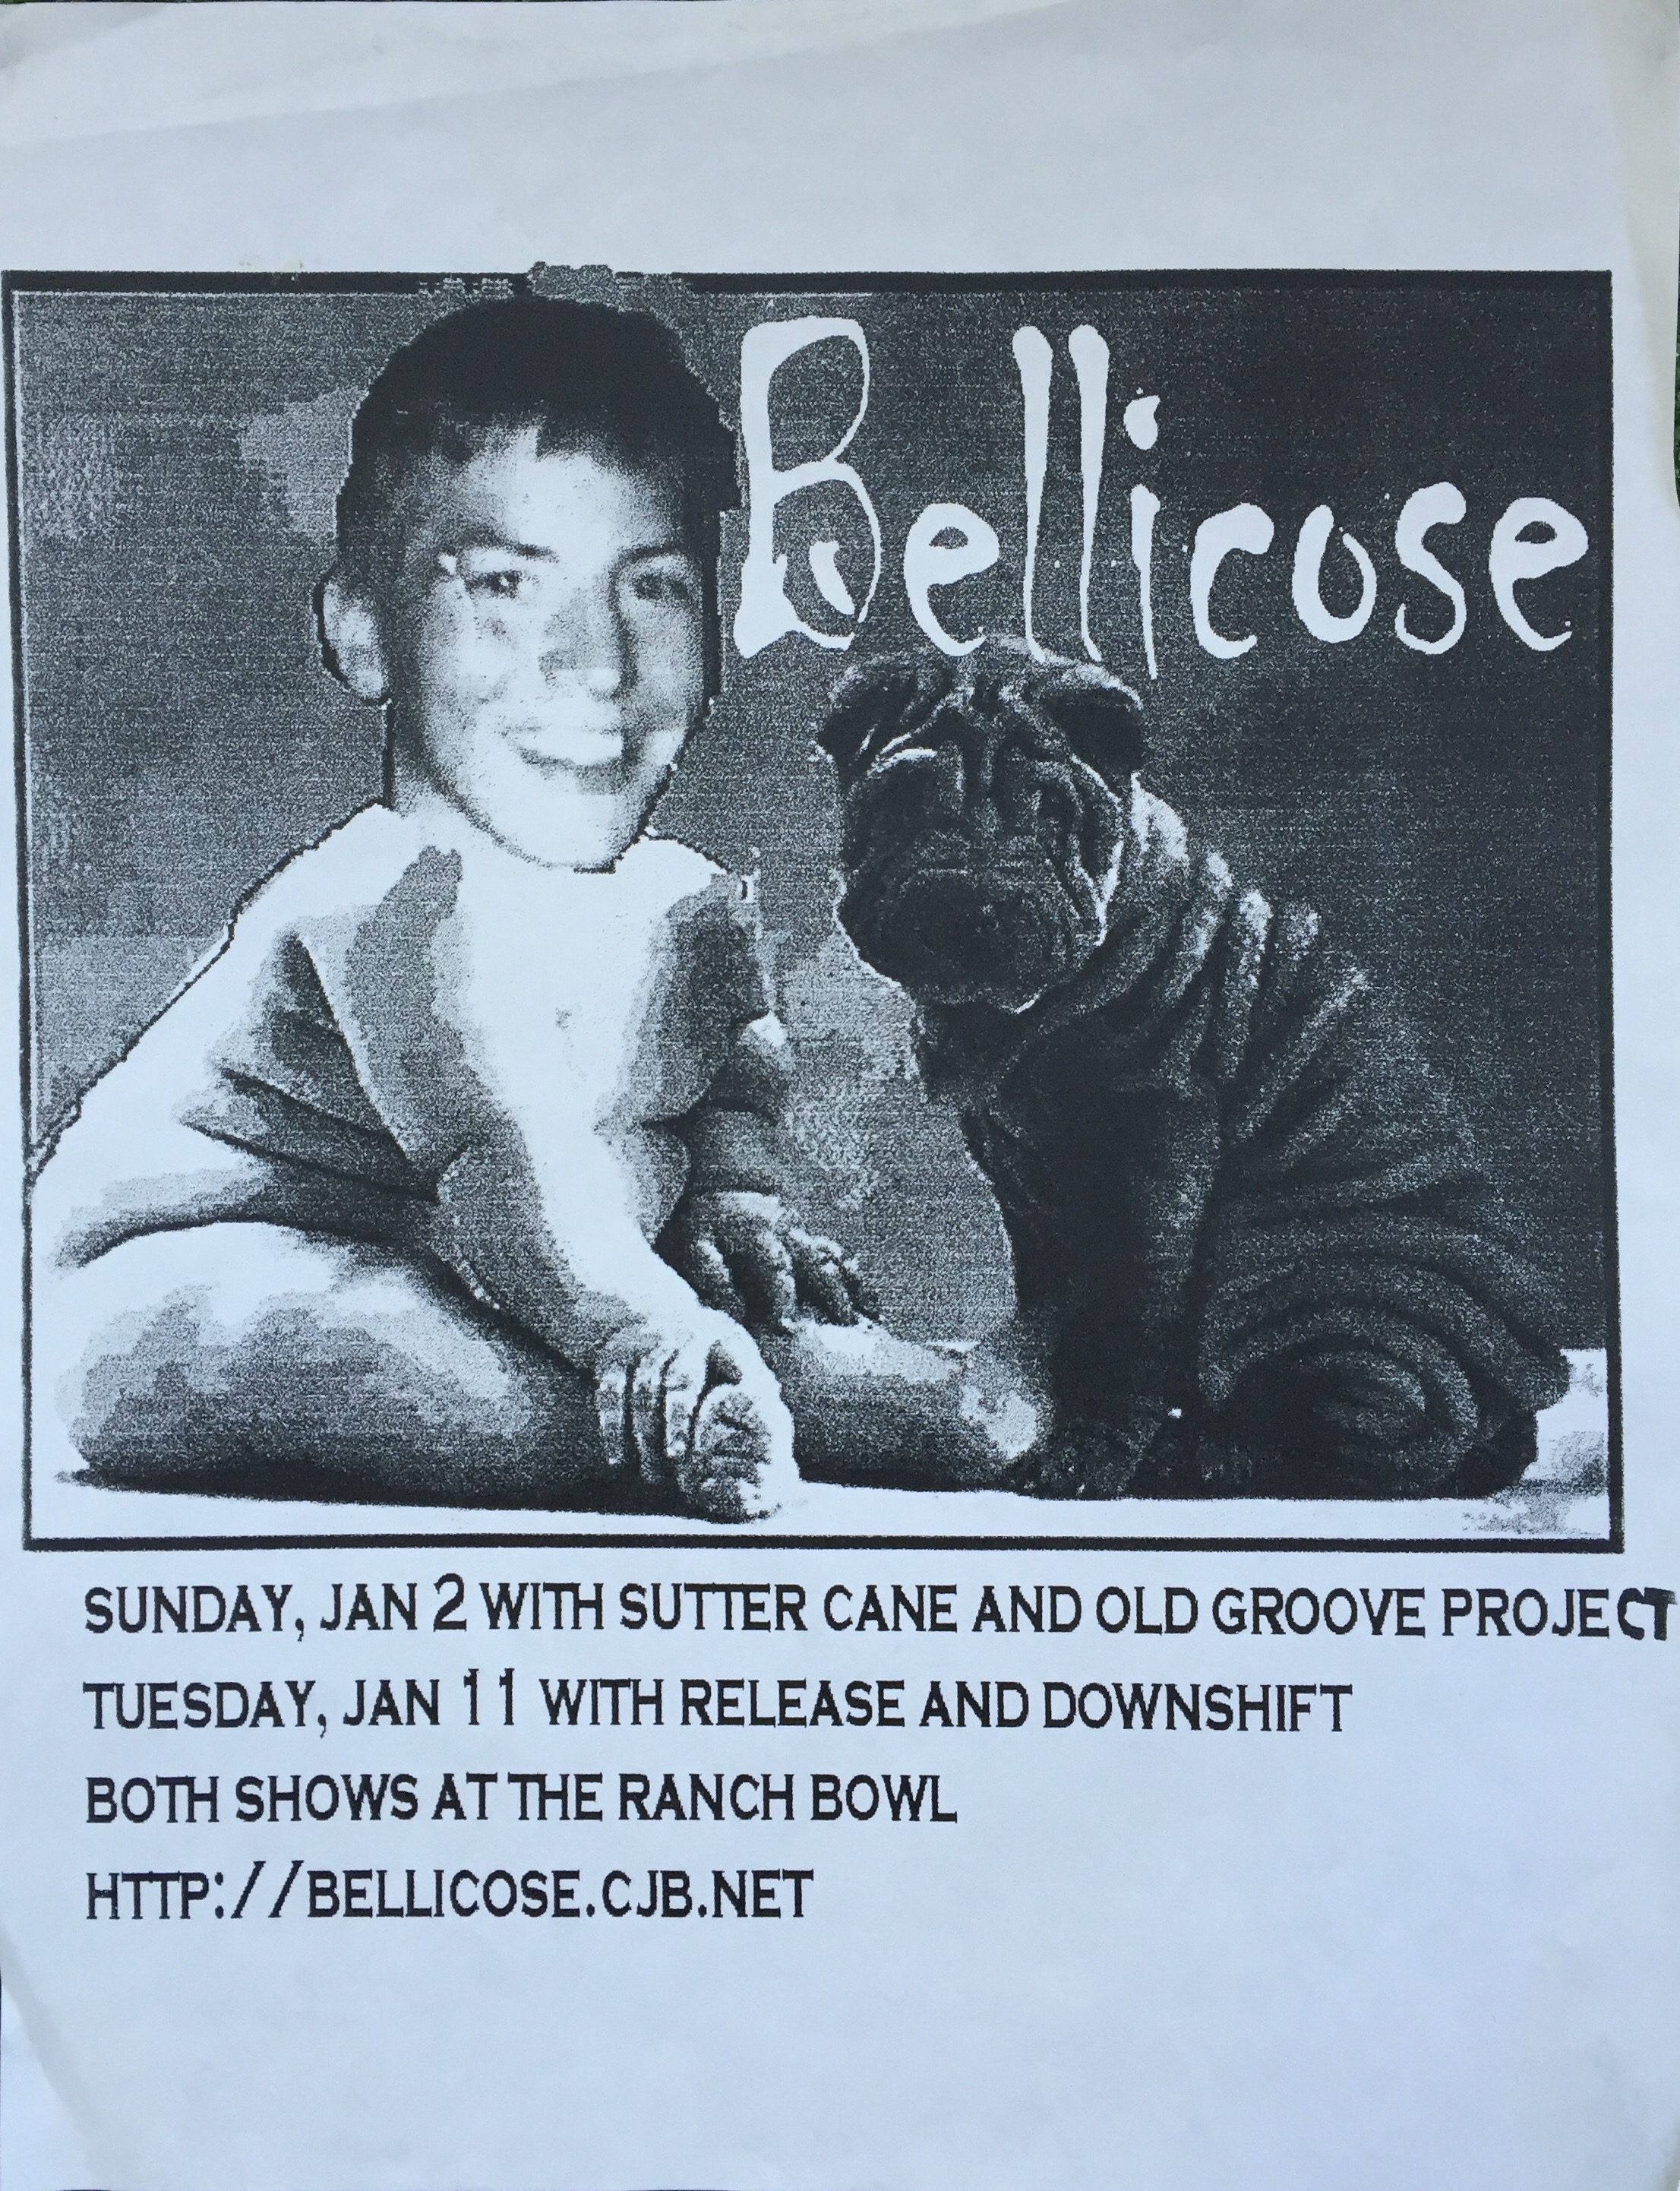 bellicose_ranchbowl3.jpg